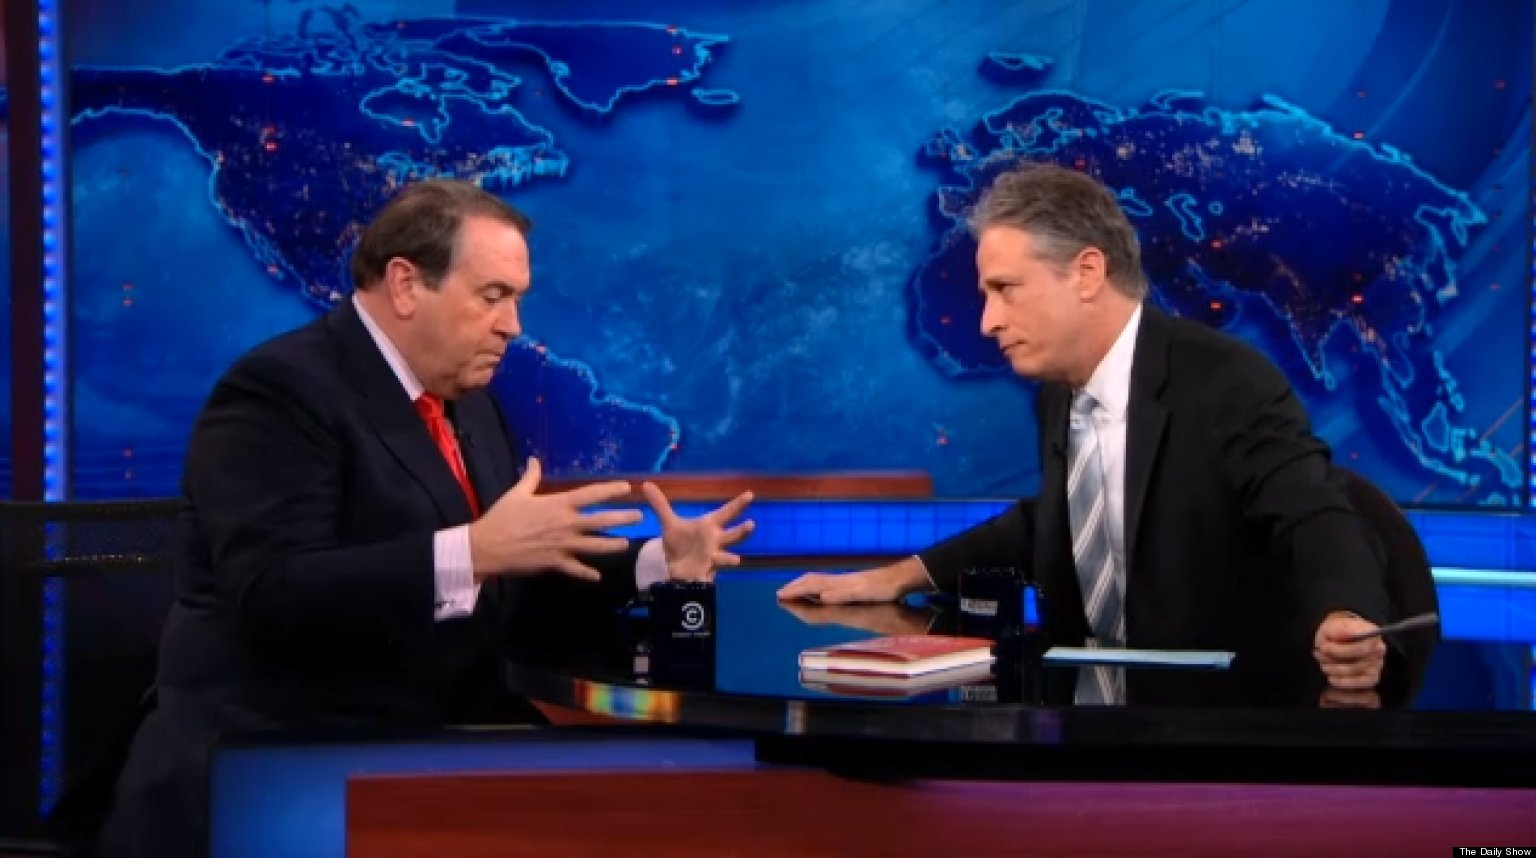 Jon Stewart Mike Huckabee Duke It Out Over Gay Marriage On The Daily Show VIDEO